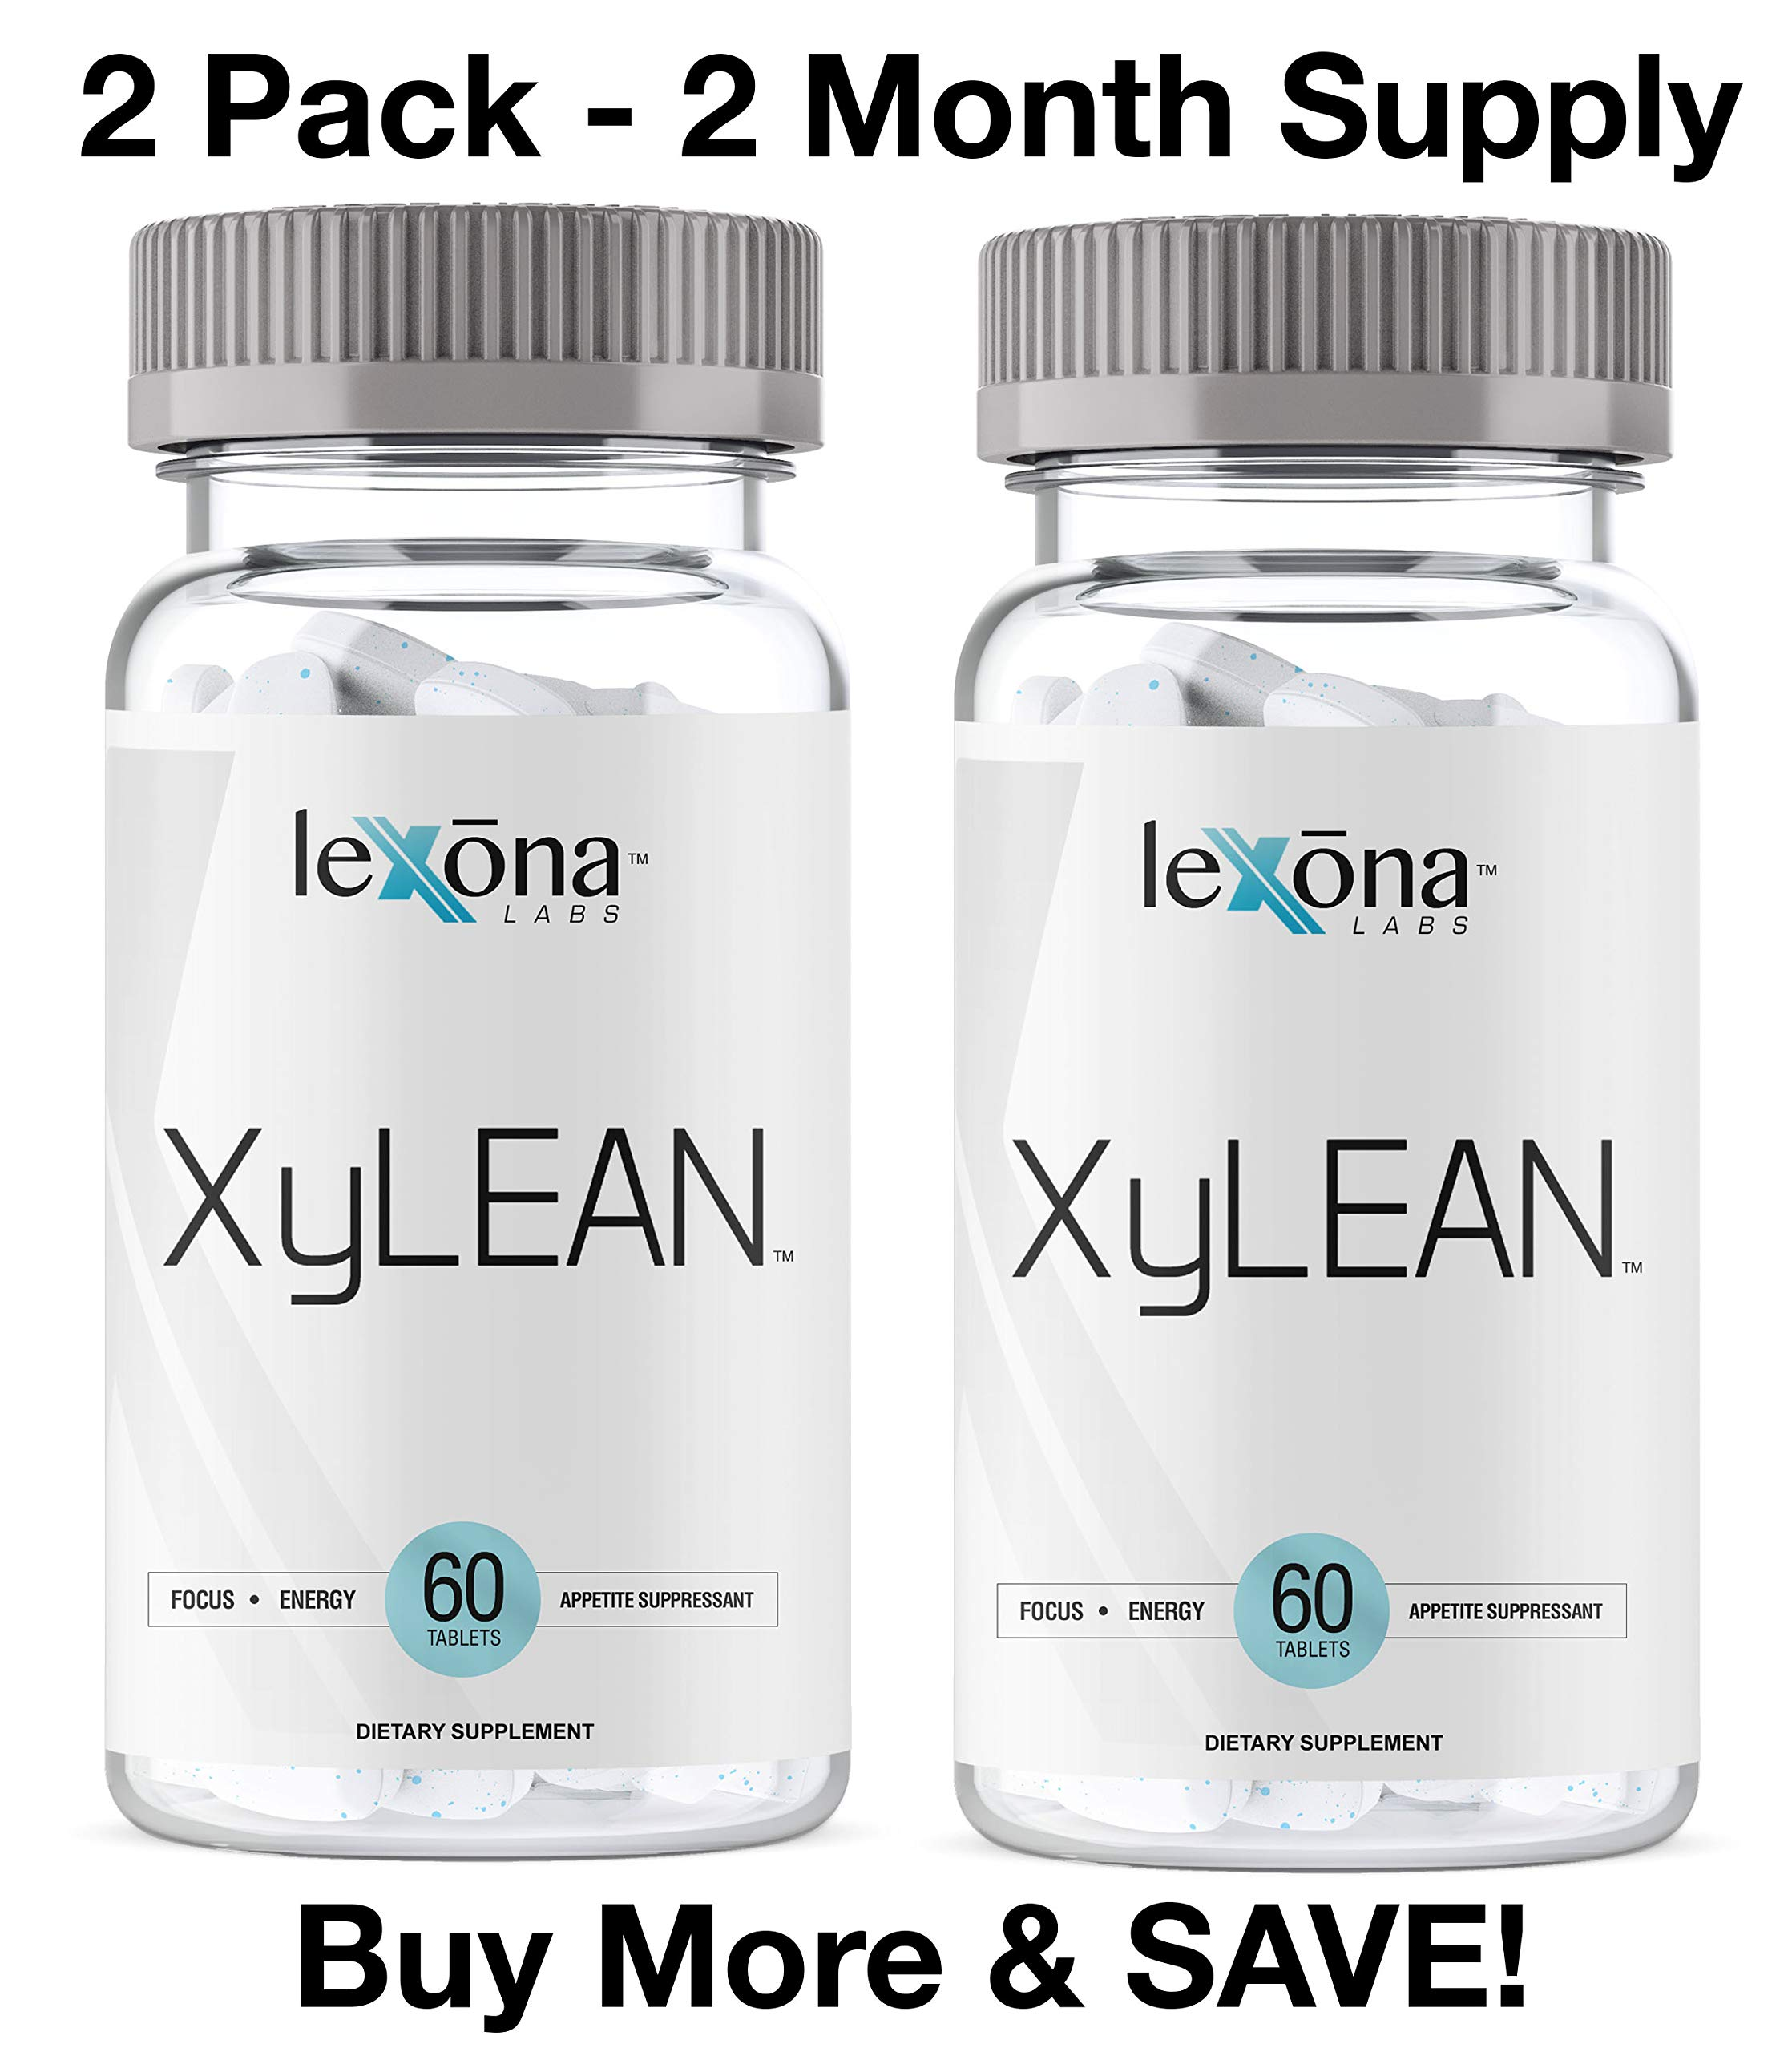 XyLEAN Huge Sale | #1 Rated Diet Pills for Men & Women w/FDA Approved Phase 2 Carb Controller | Dr. Formulated Weight Loss Aid | Helps Curb Hunger, Reduce Water Retention, Increase Energy | 2 Pack by XyLEAN